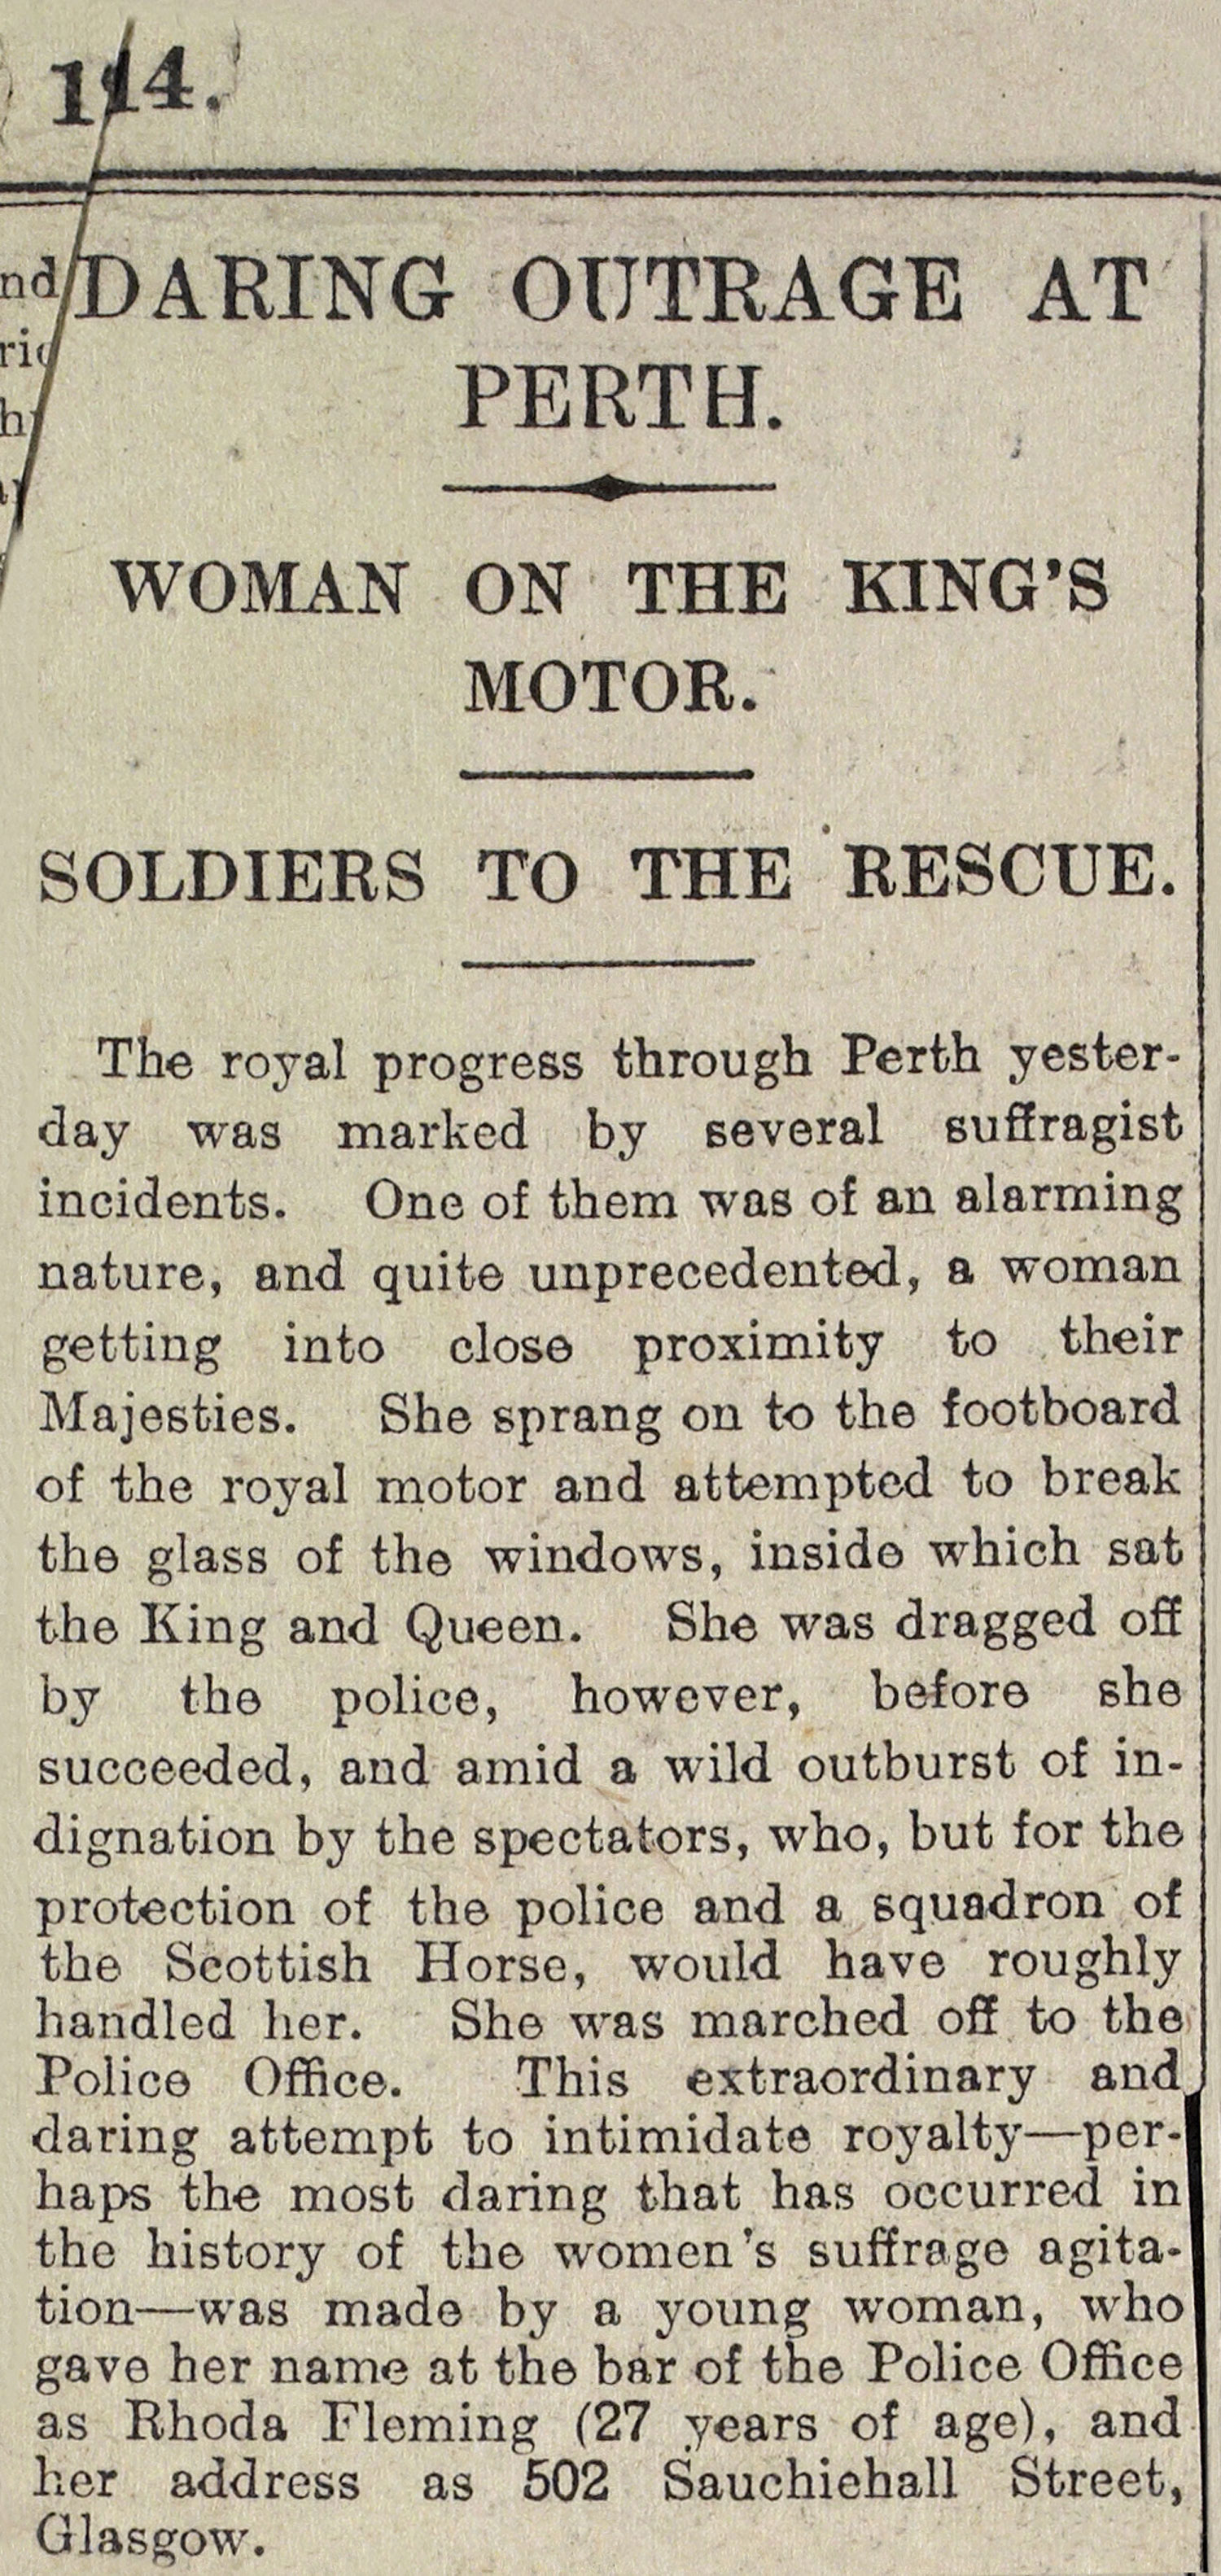 Newspaper report of protest during royal visit to Perth, 1914